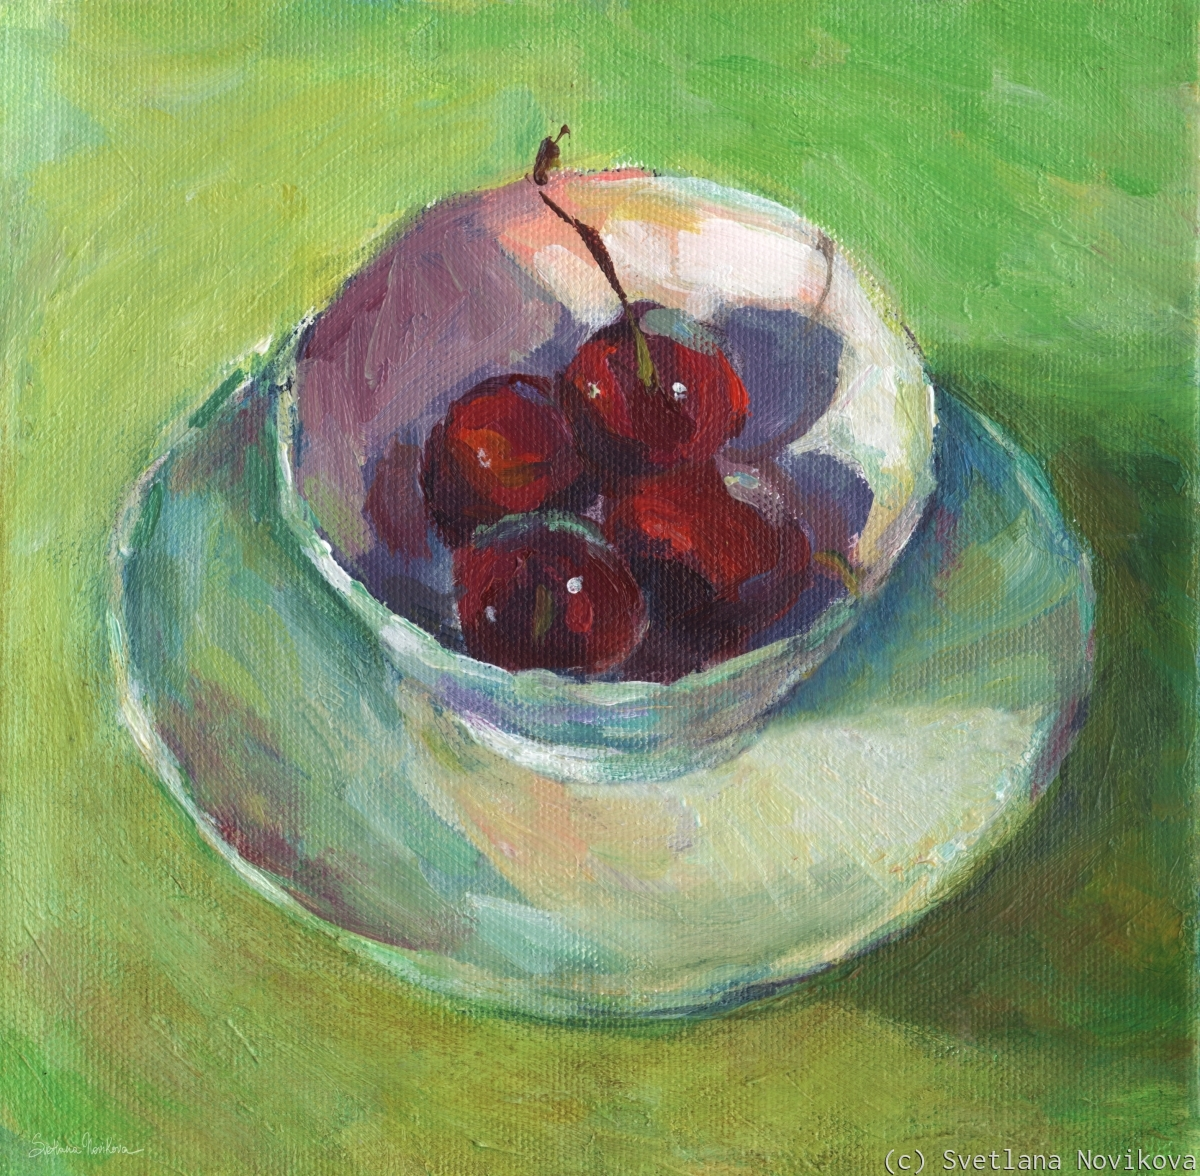 Beautiful impressionistic juicy cherries in a cup still life original painting for sale by Svetlana Novikova (large view)